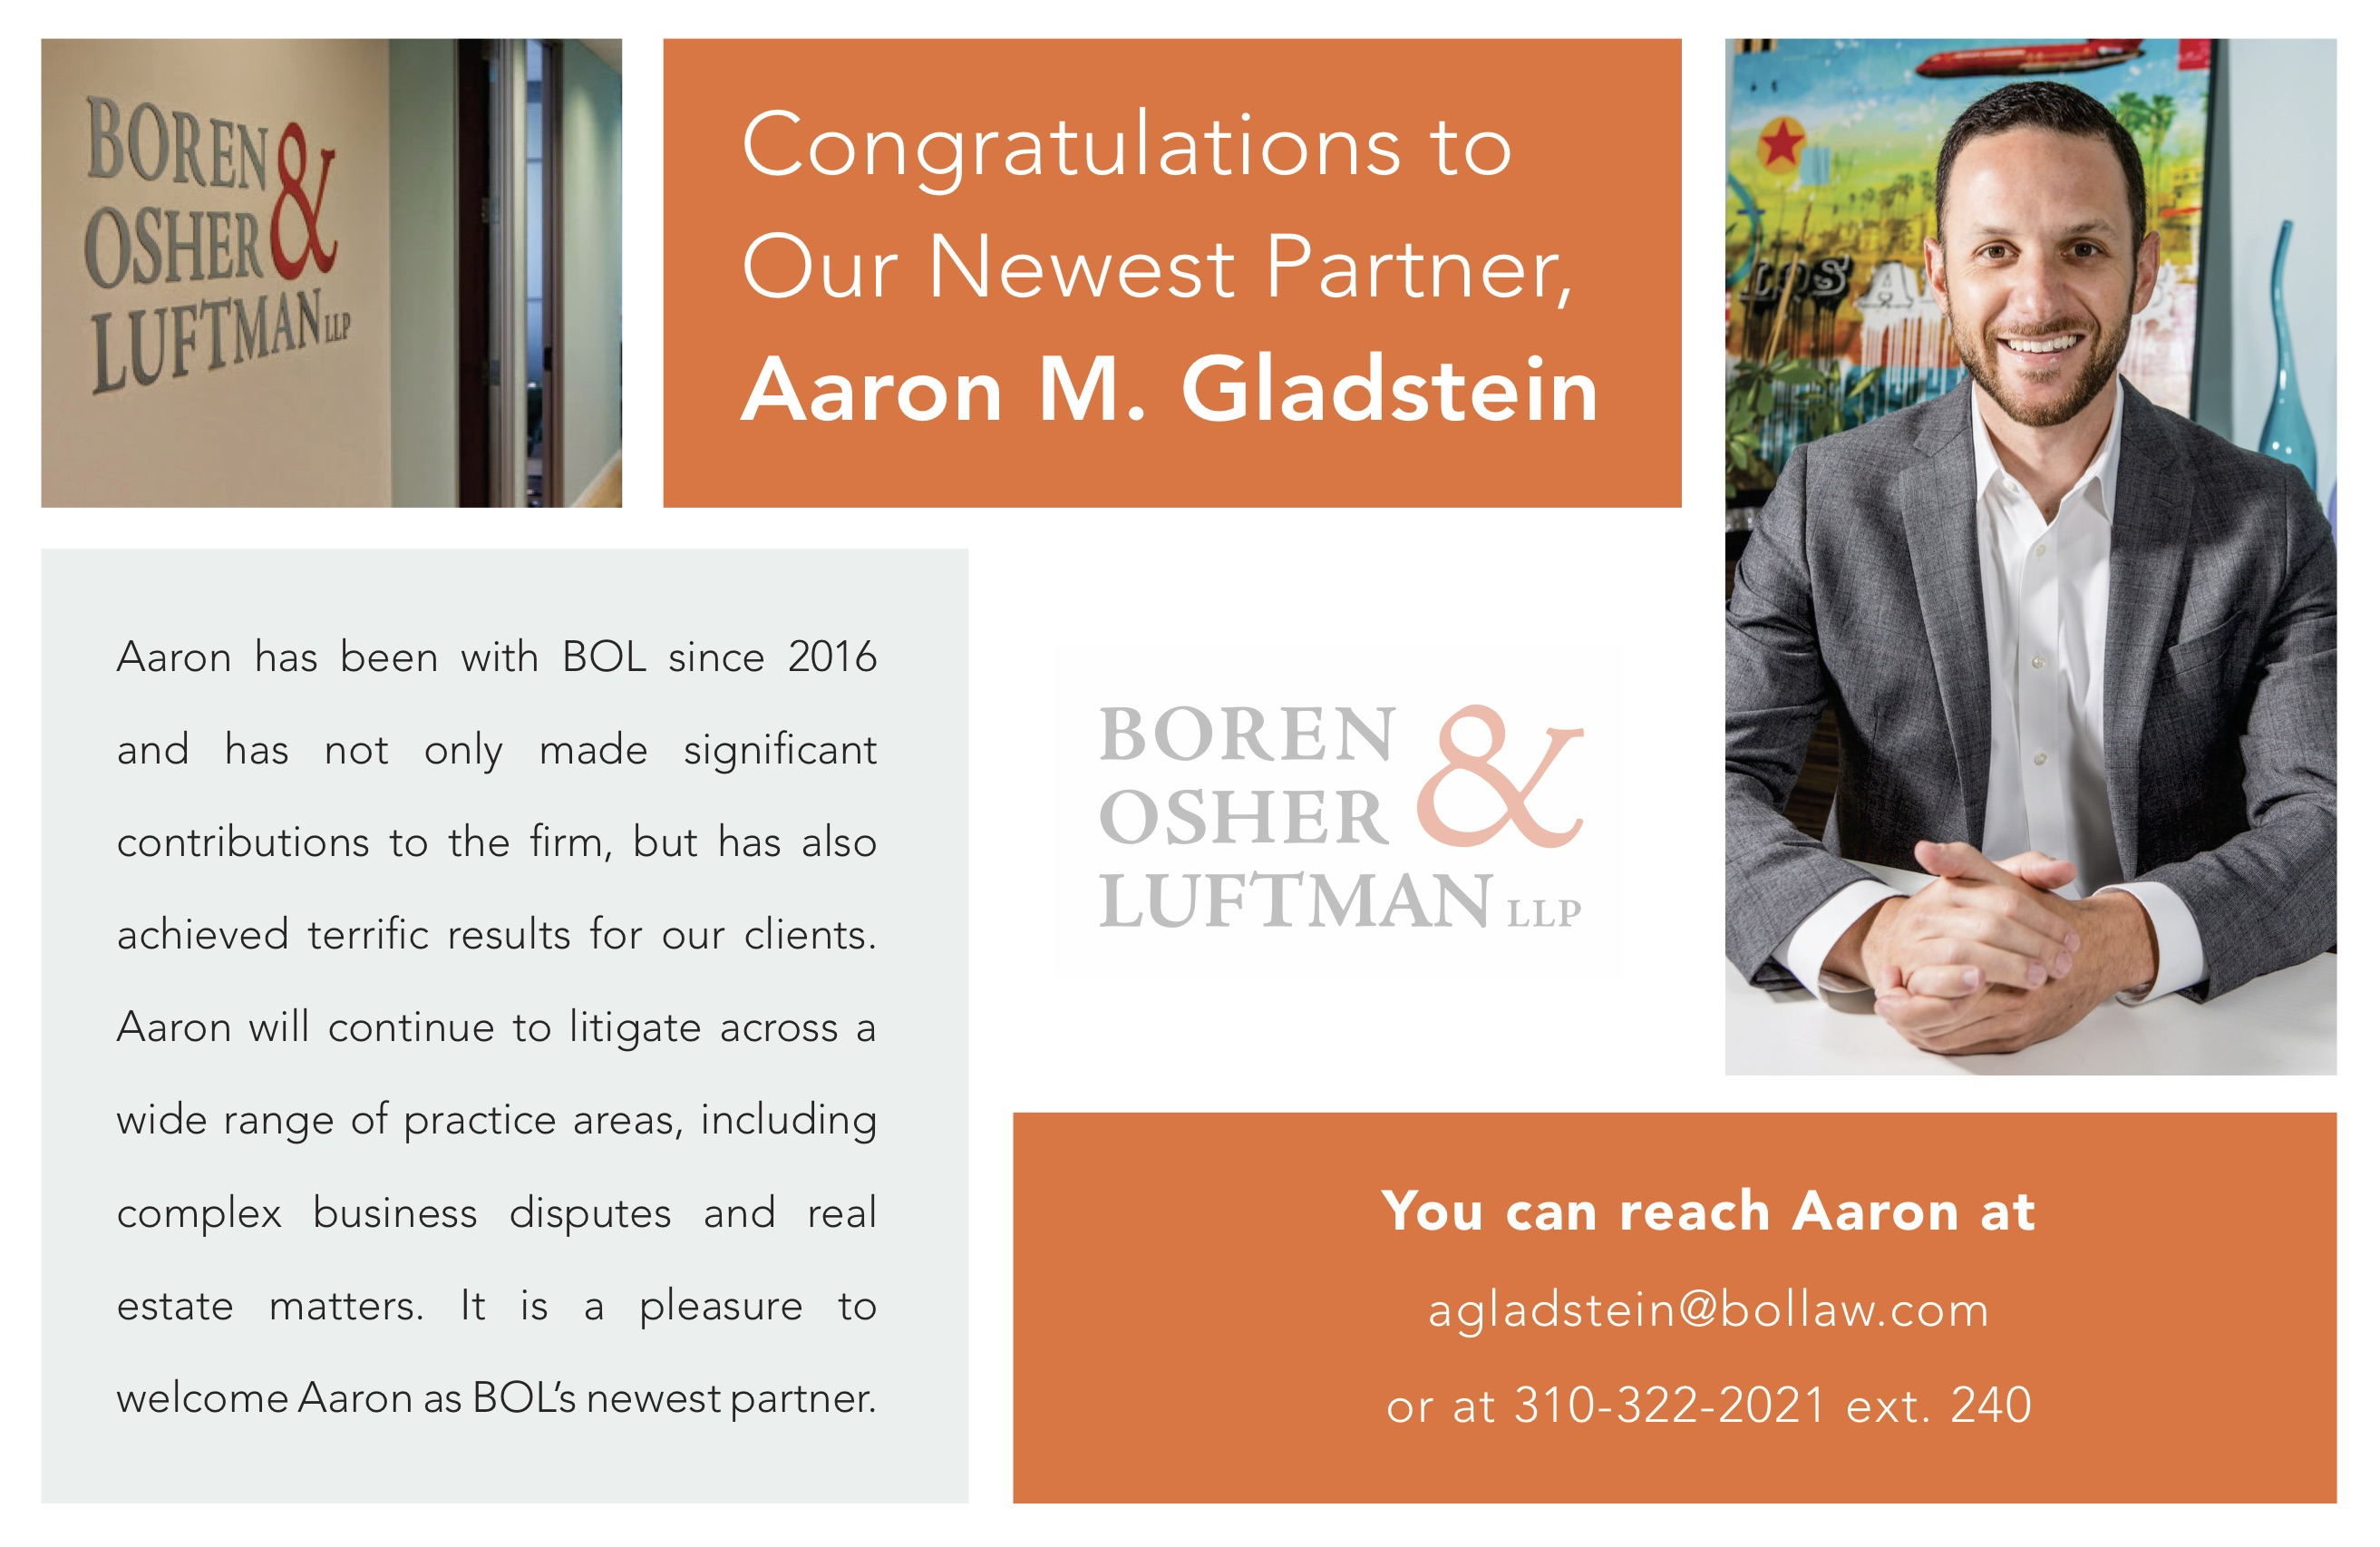 Congratulations to Our Newest Partner, Aaron M. Gladstein